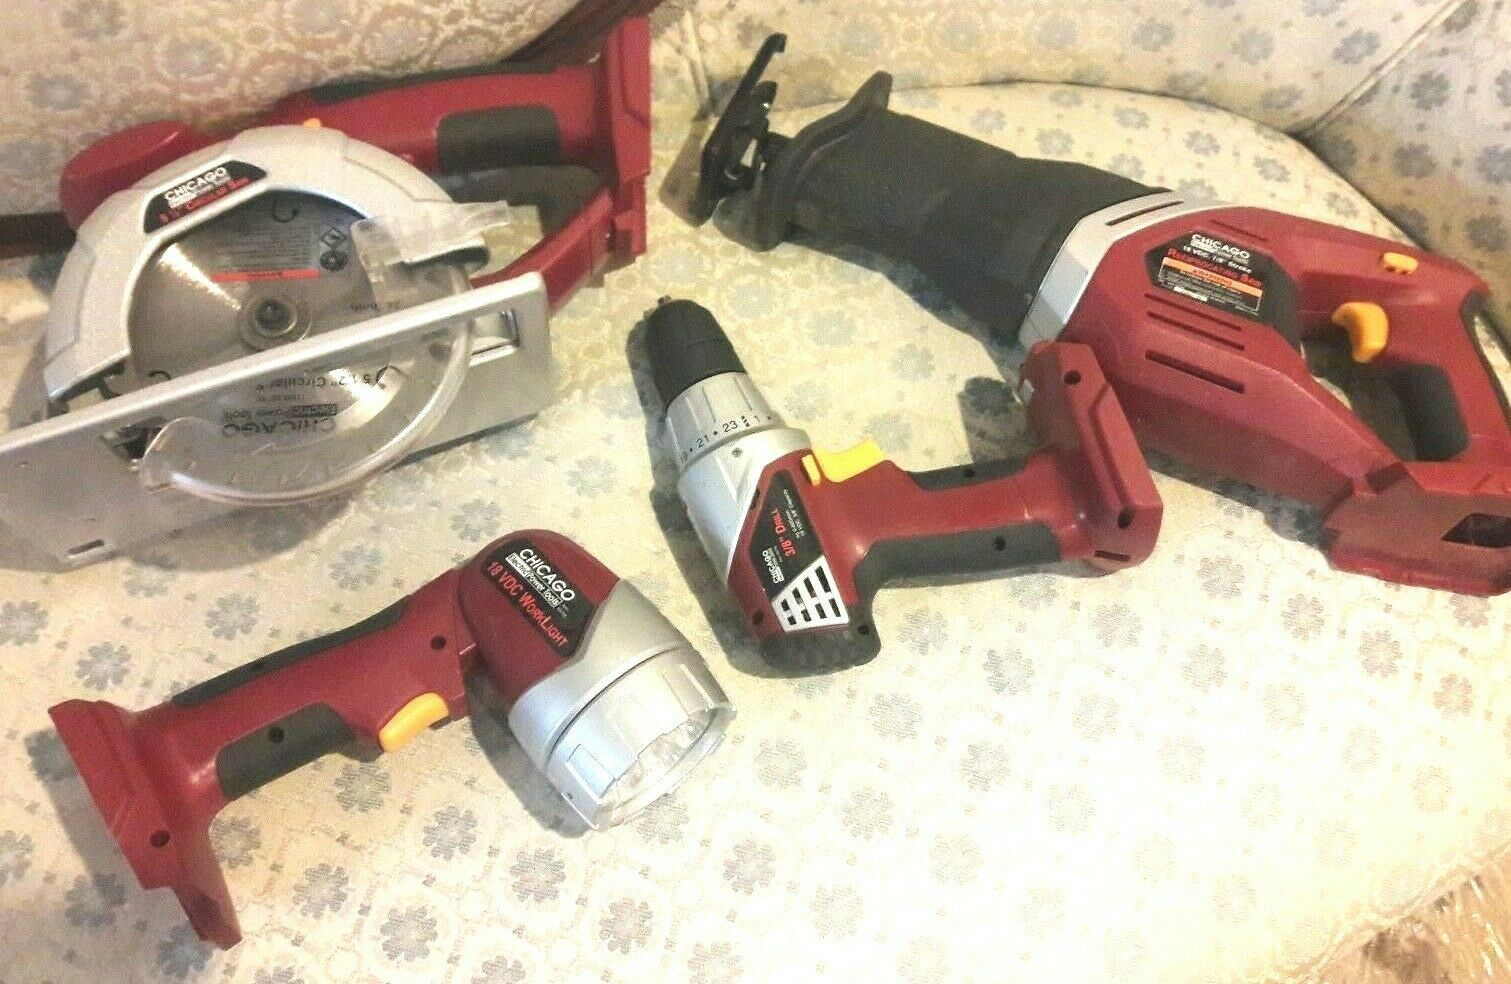 Chicago Electric 18V Cordless Combo Set (drill,Circular & Reciprocating Saw, Fle - $85.00